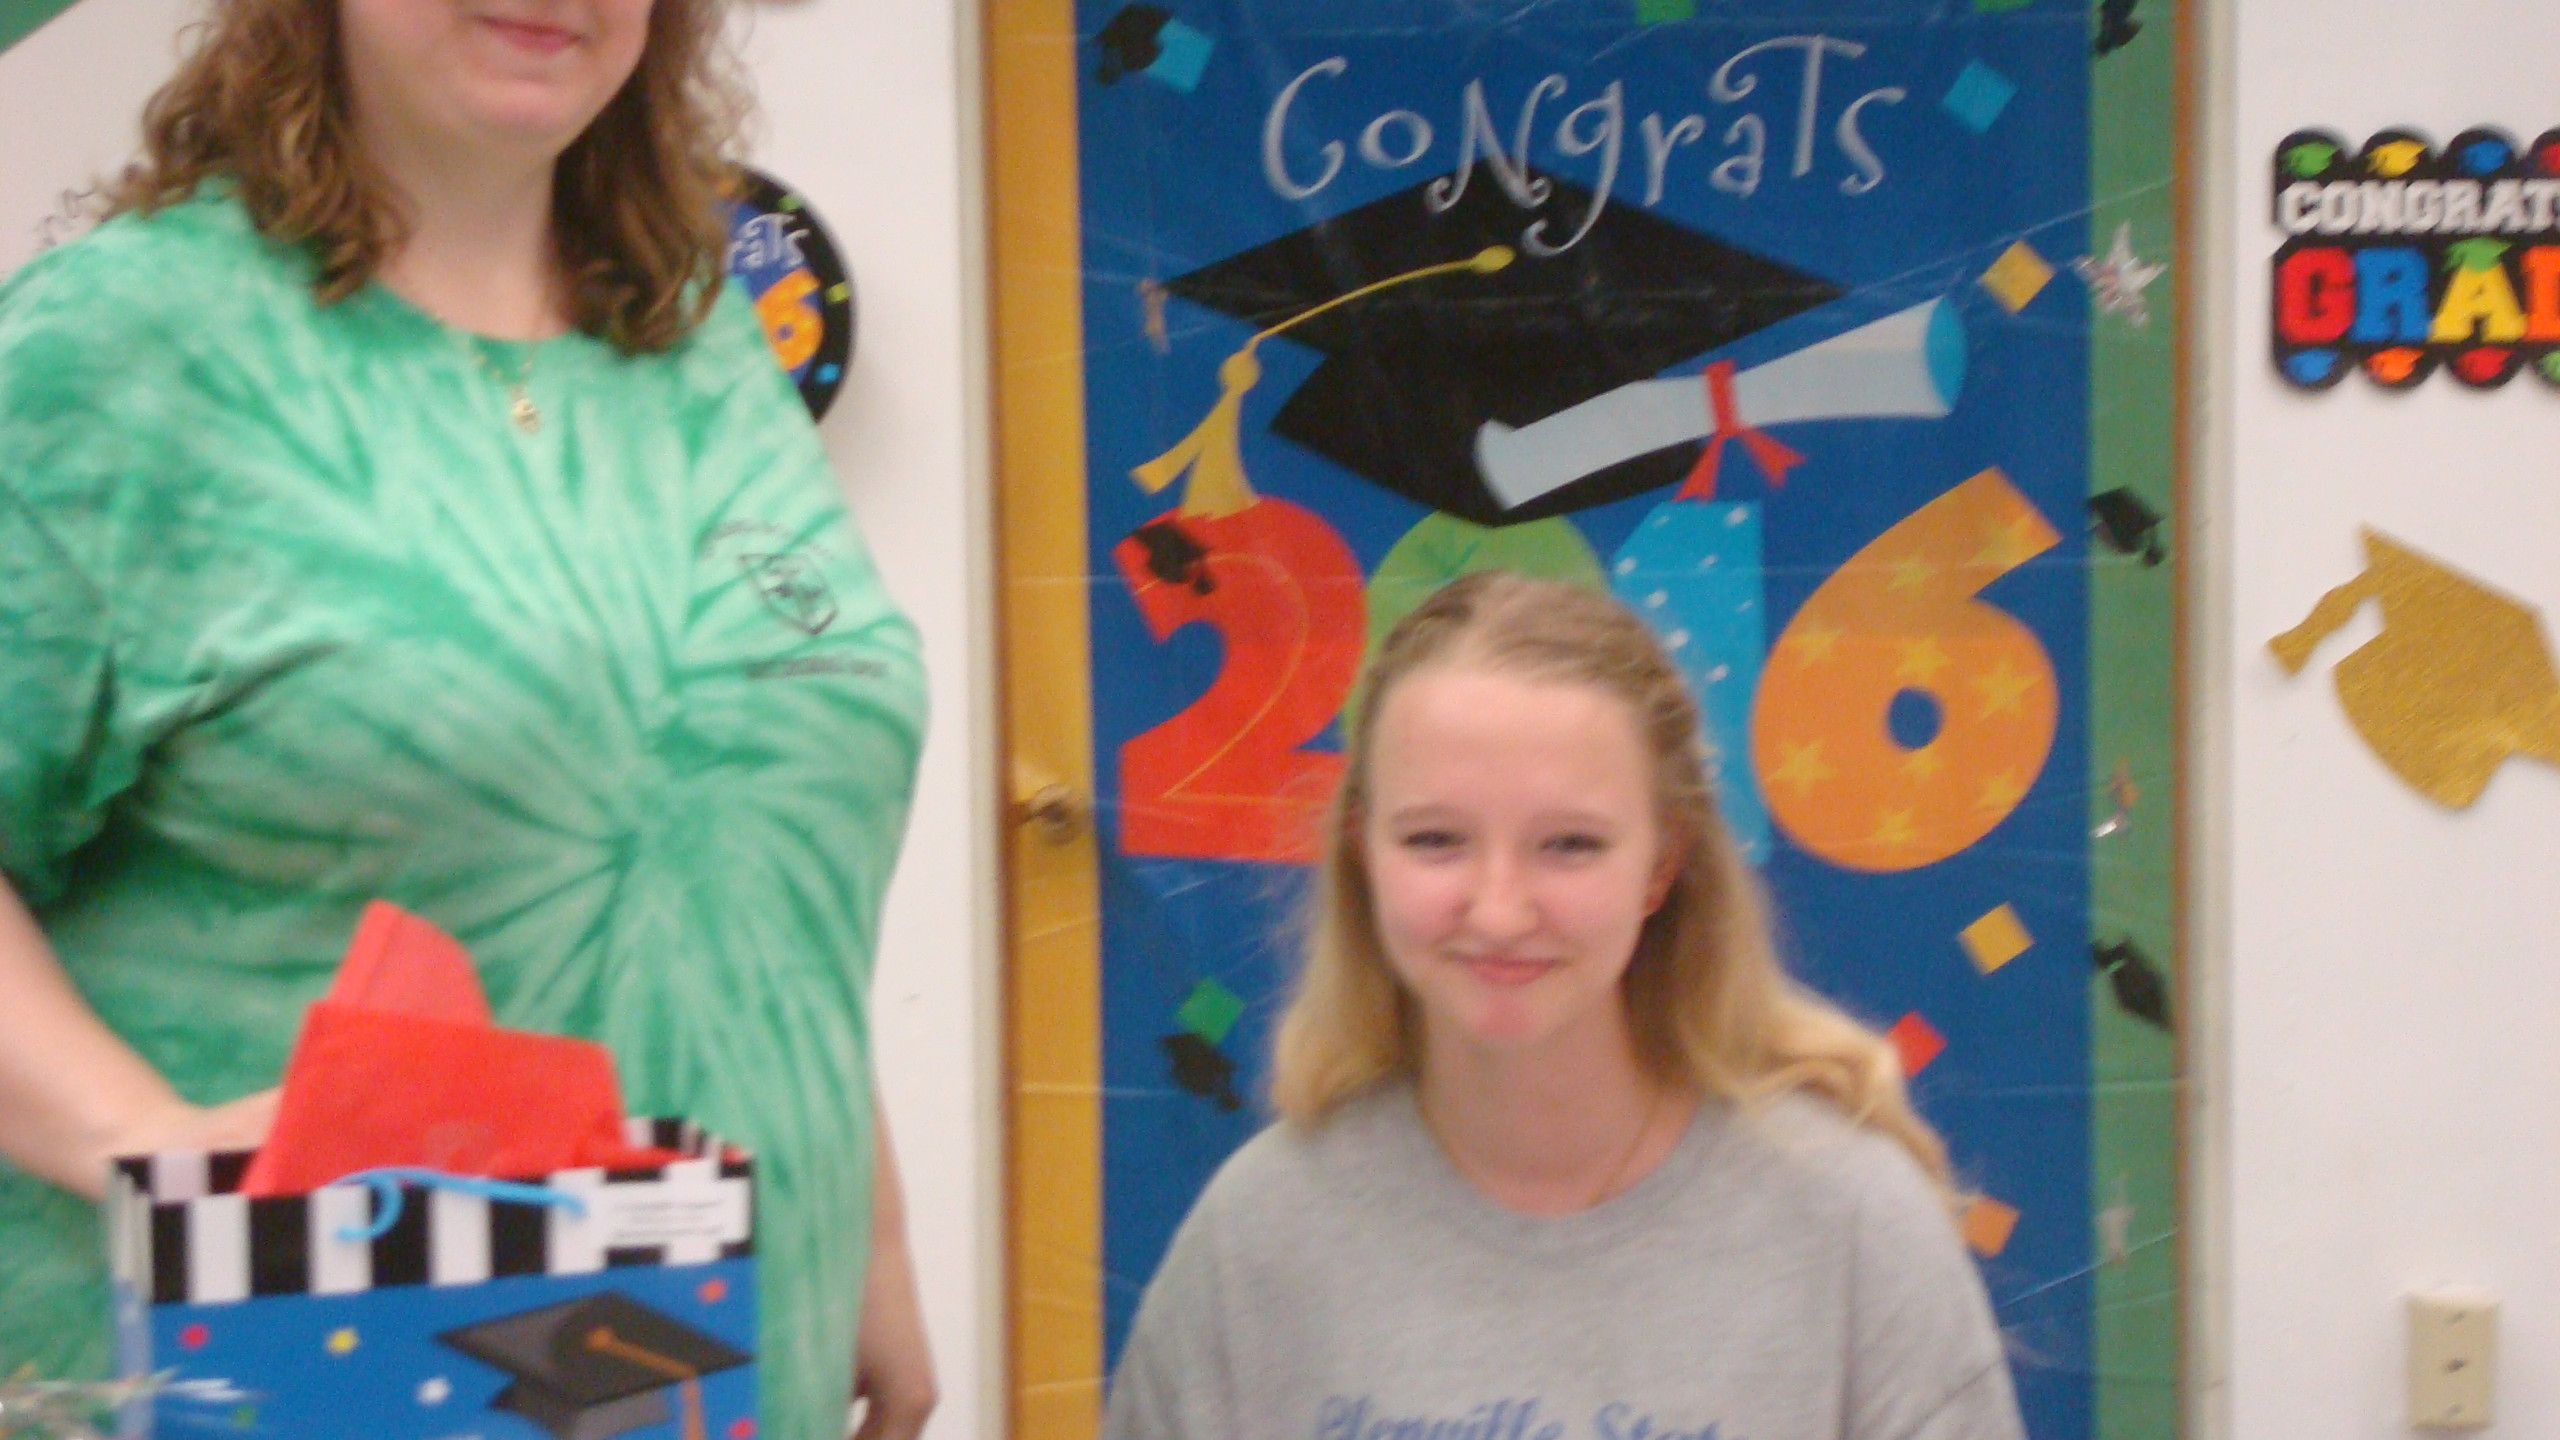 Danielle will be attending Glenville State College